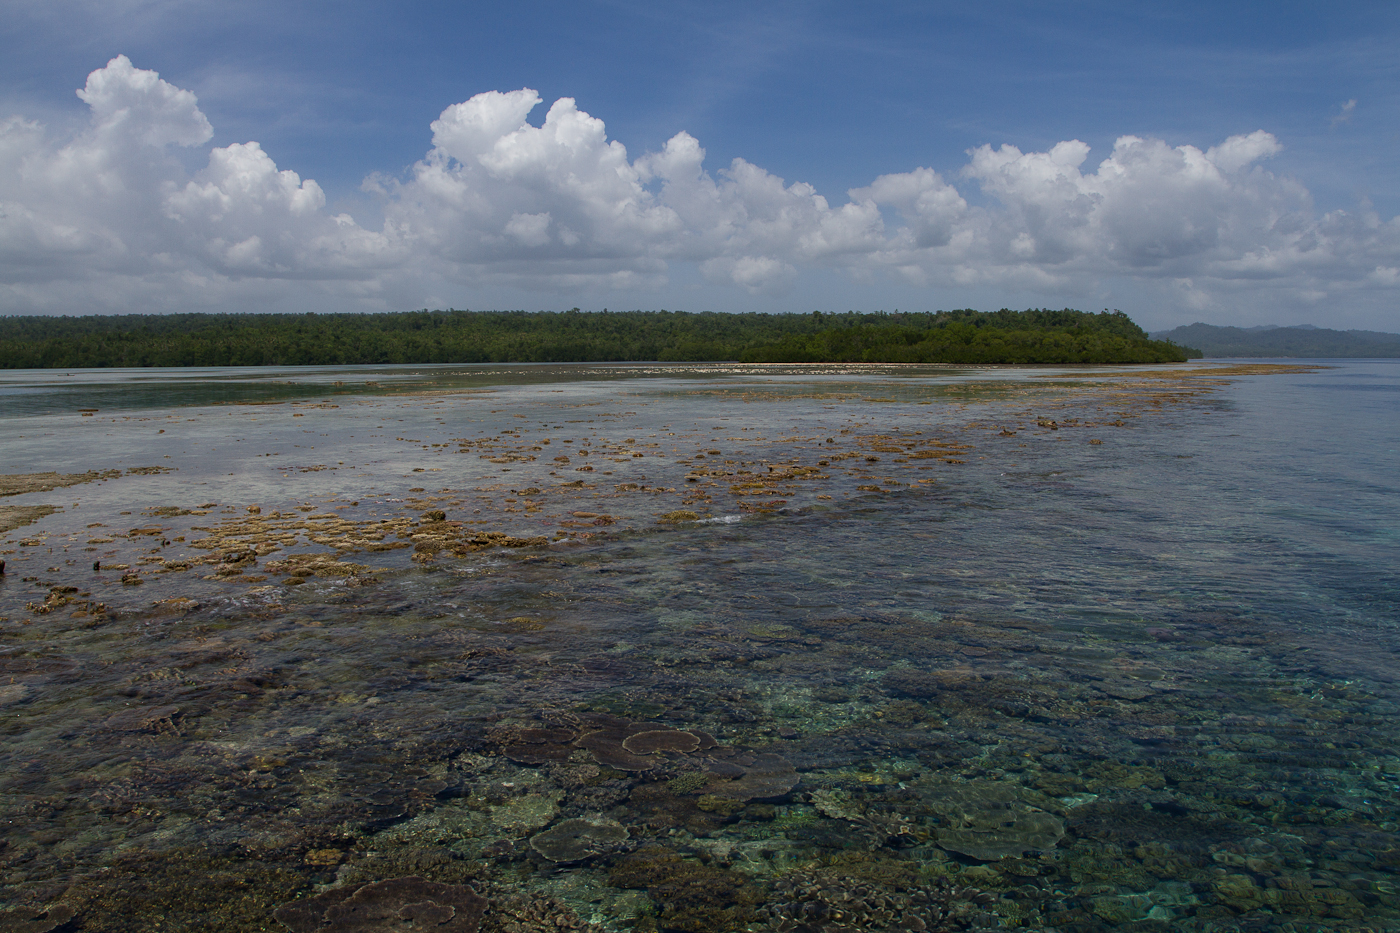 View over the reef near Weda Resort, Halmahera